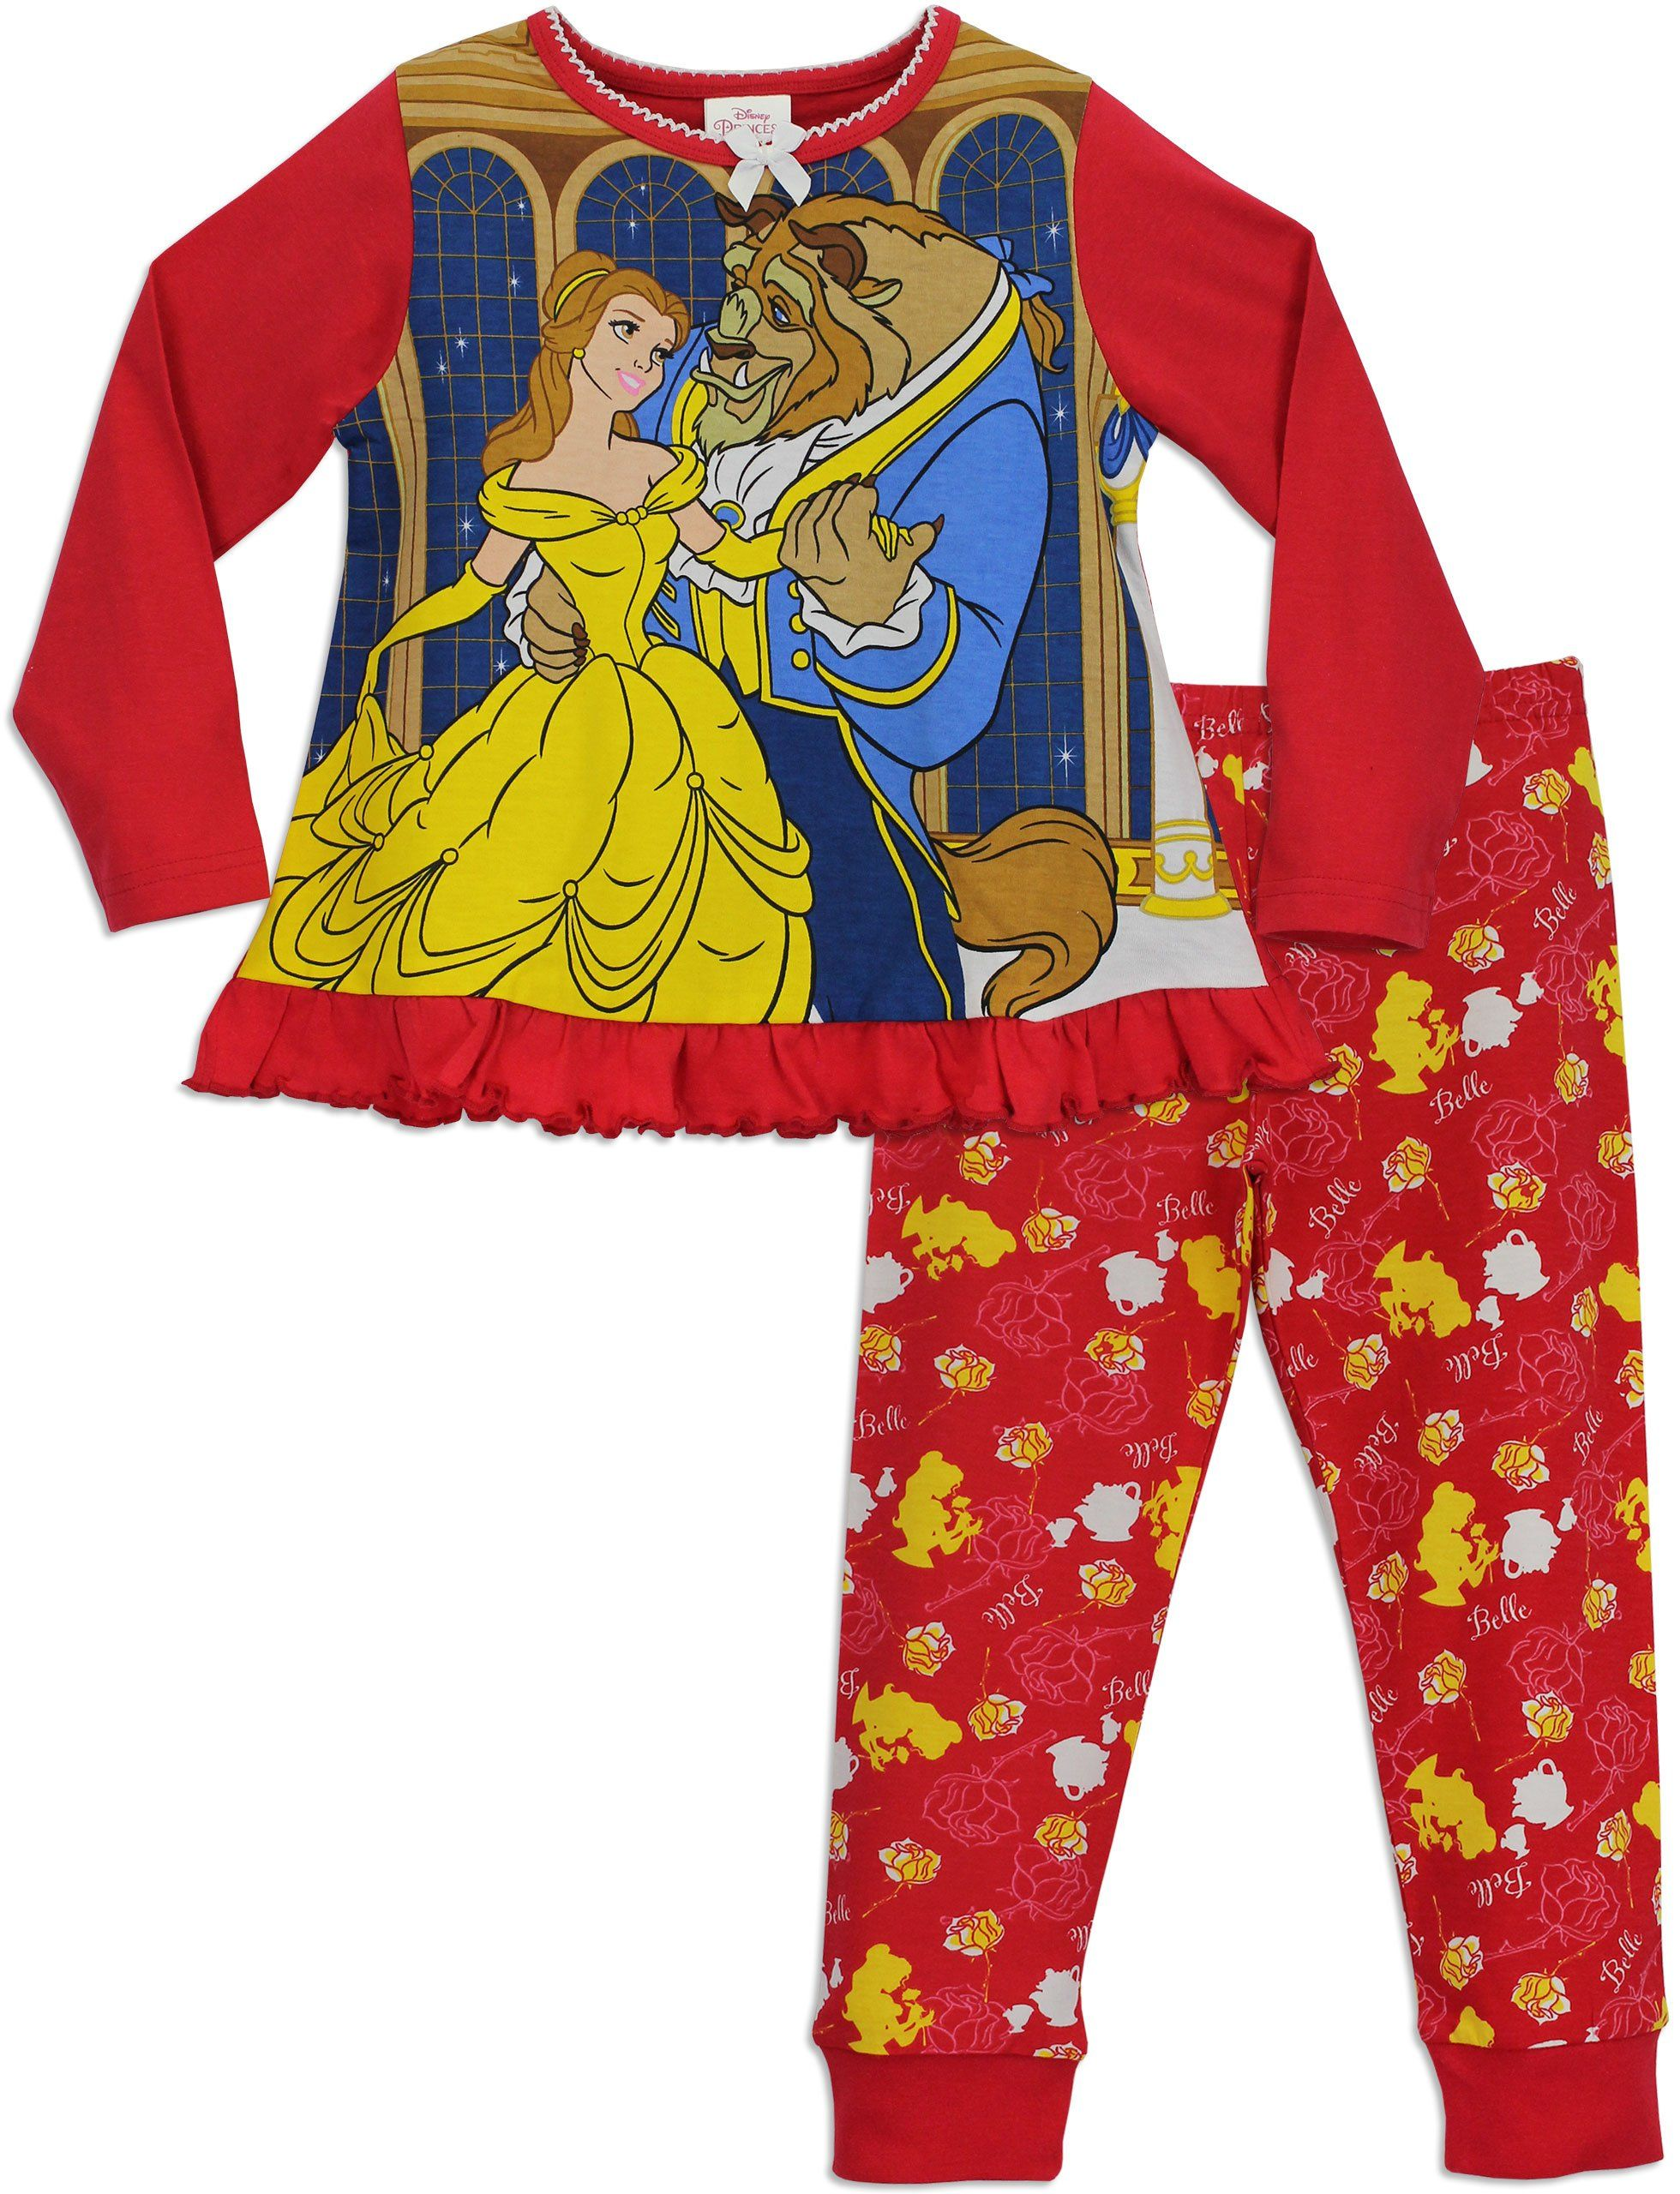 b28edfca886c Disney Princess Girls Beauty and the Beast Pyjamas Ages 18 Months to ...